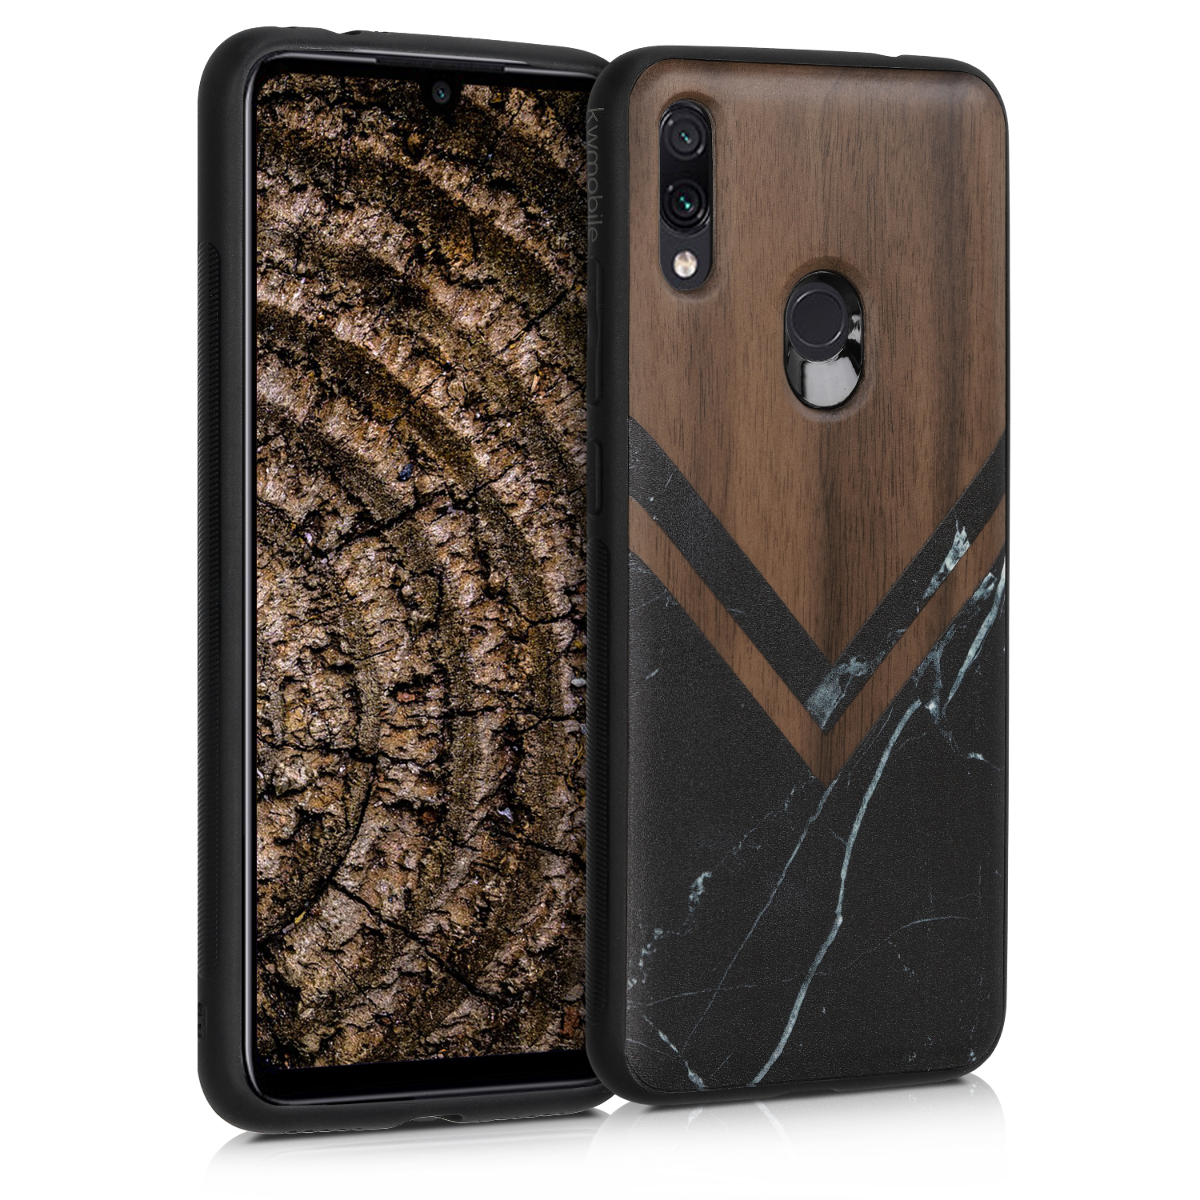 KW Σκληρή Ξύλινη Θήκη Xiaomi Redmi Note 7 / Note 7 Pro - Wood and Marble (48758.01)